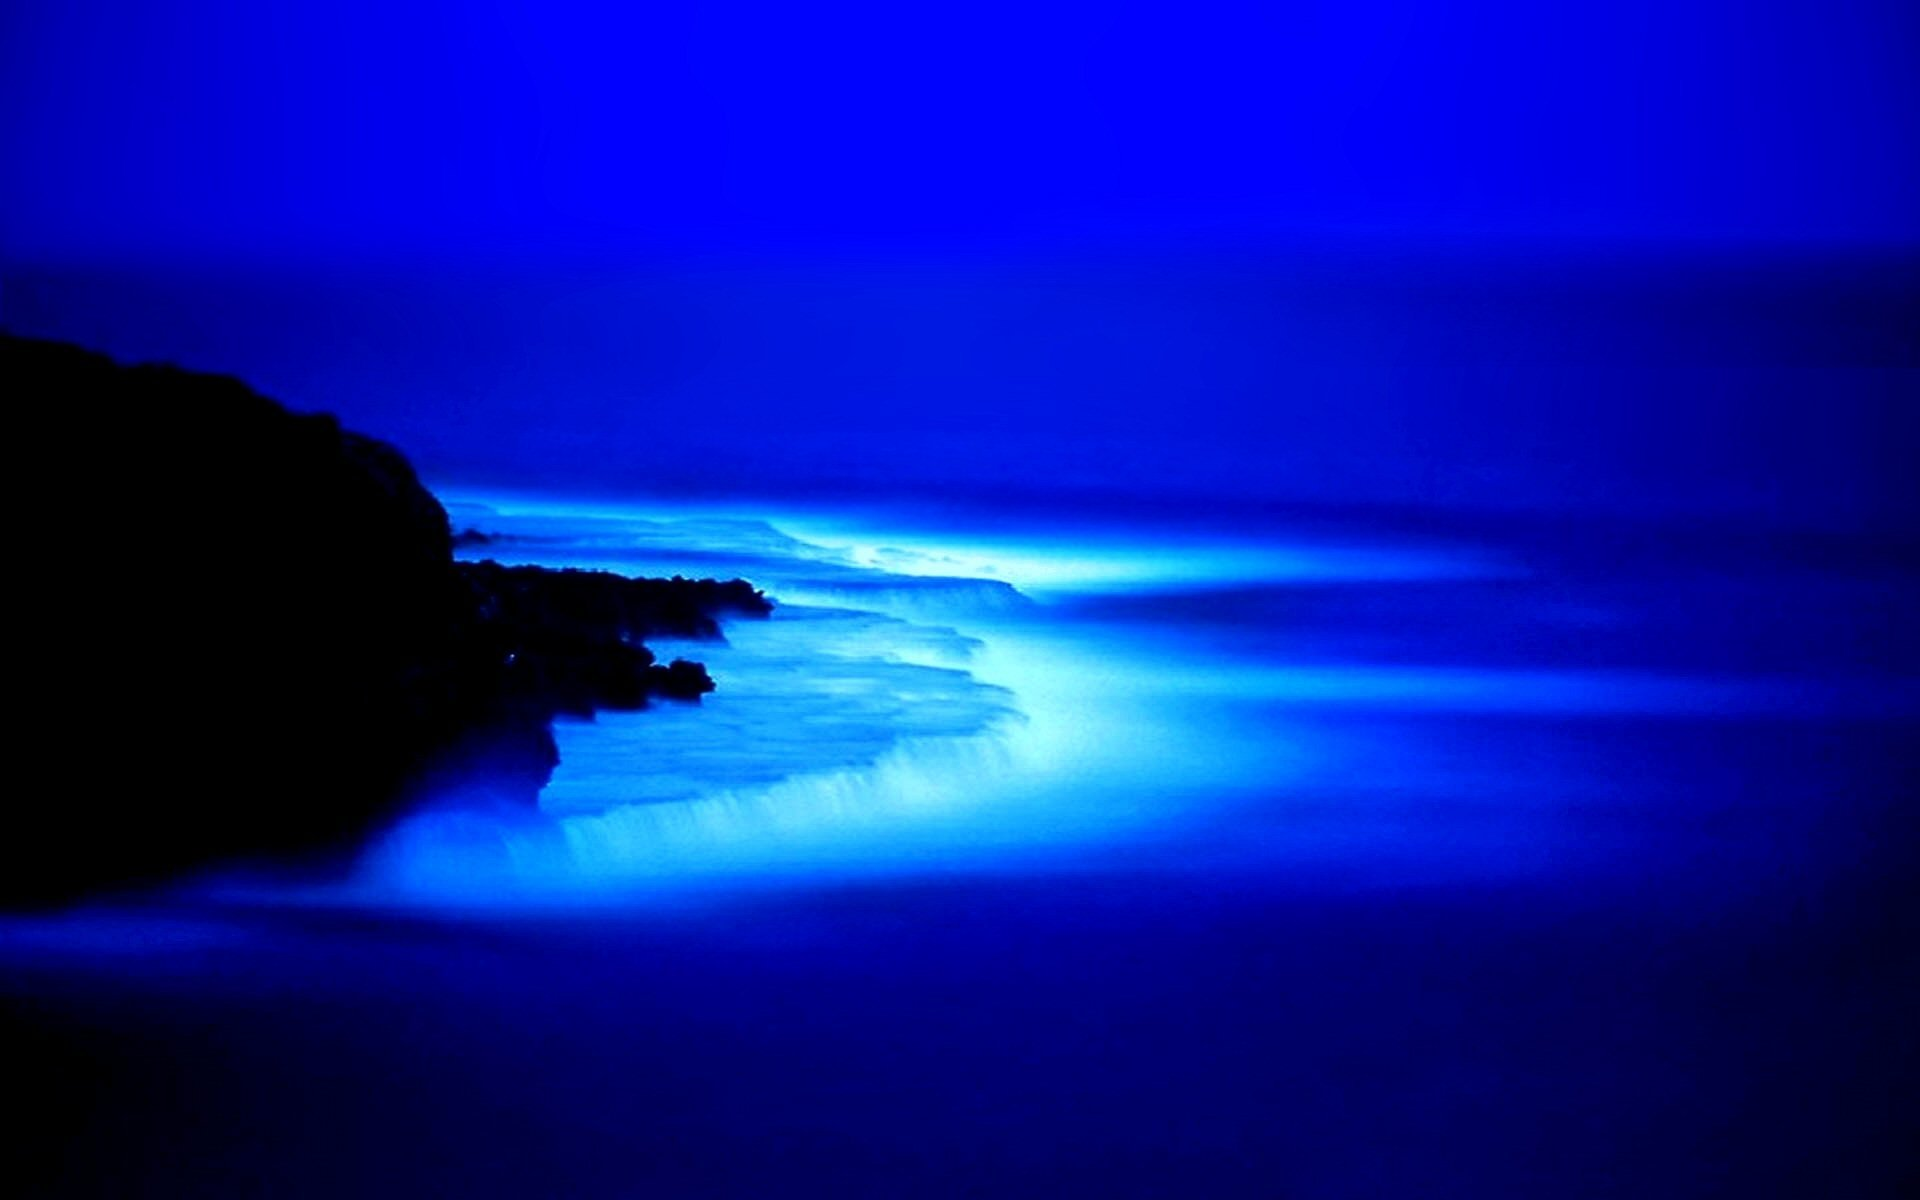 Blue Glow Wallpaper